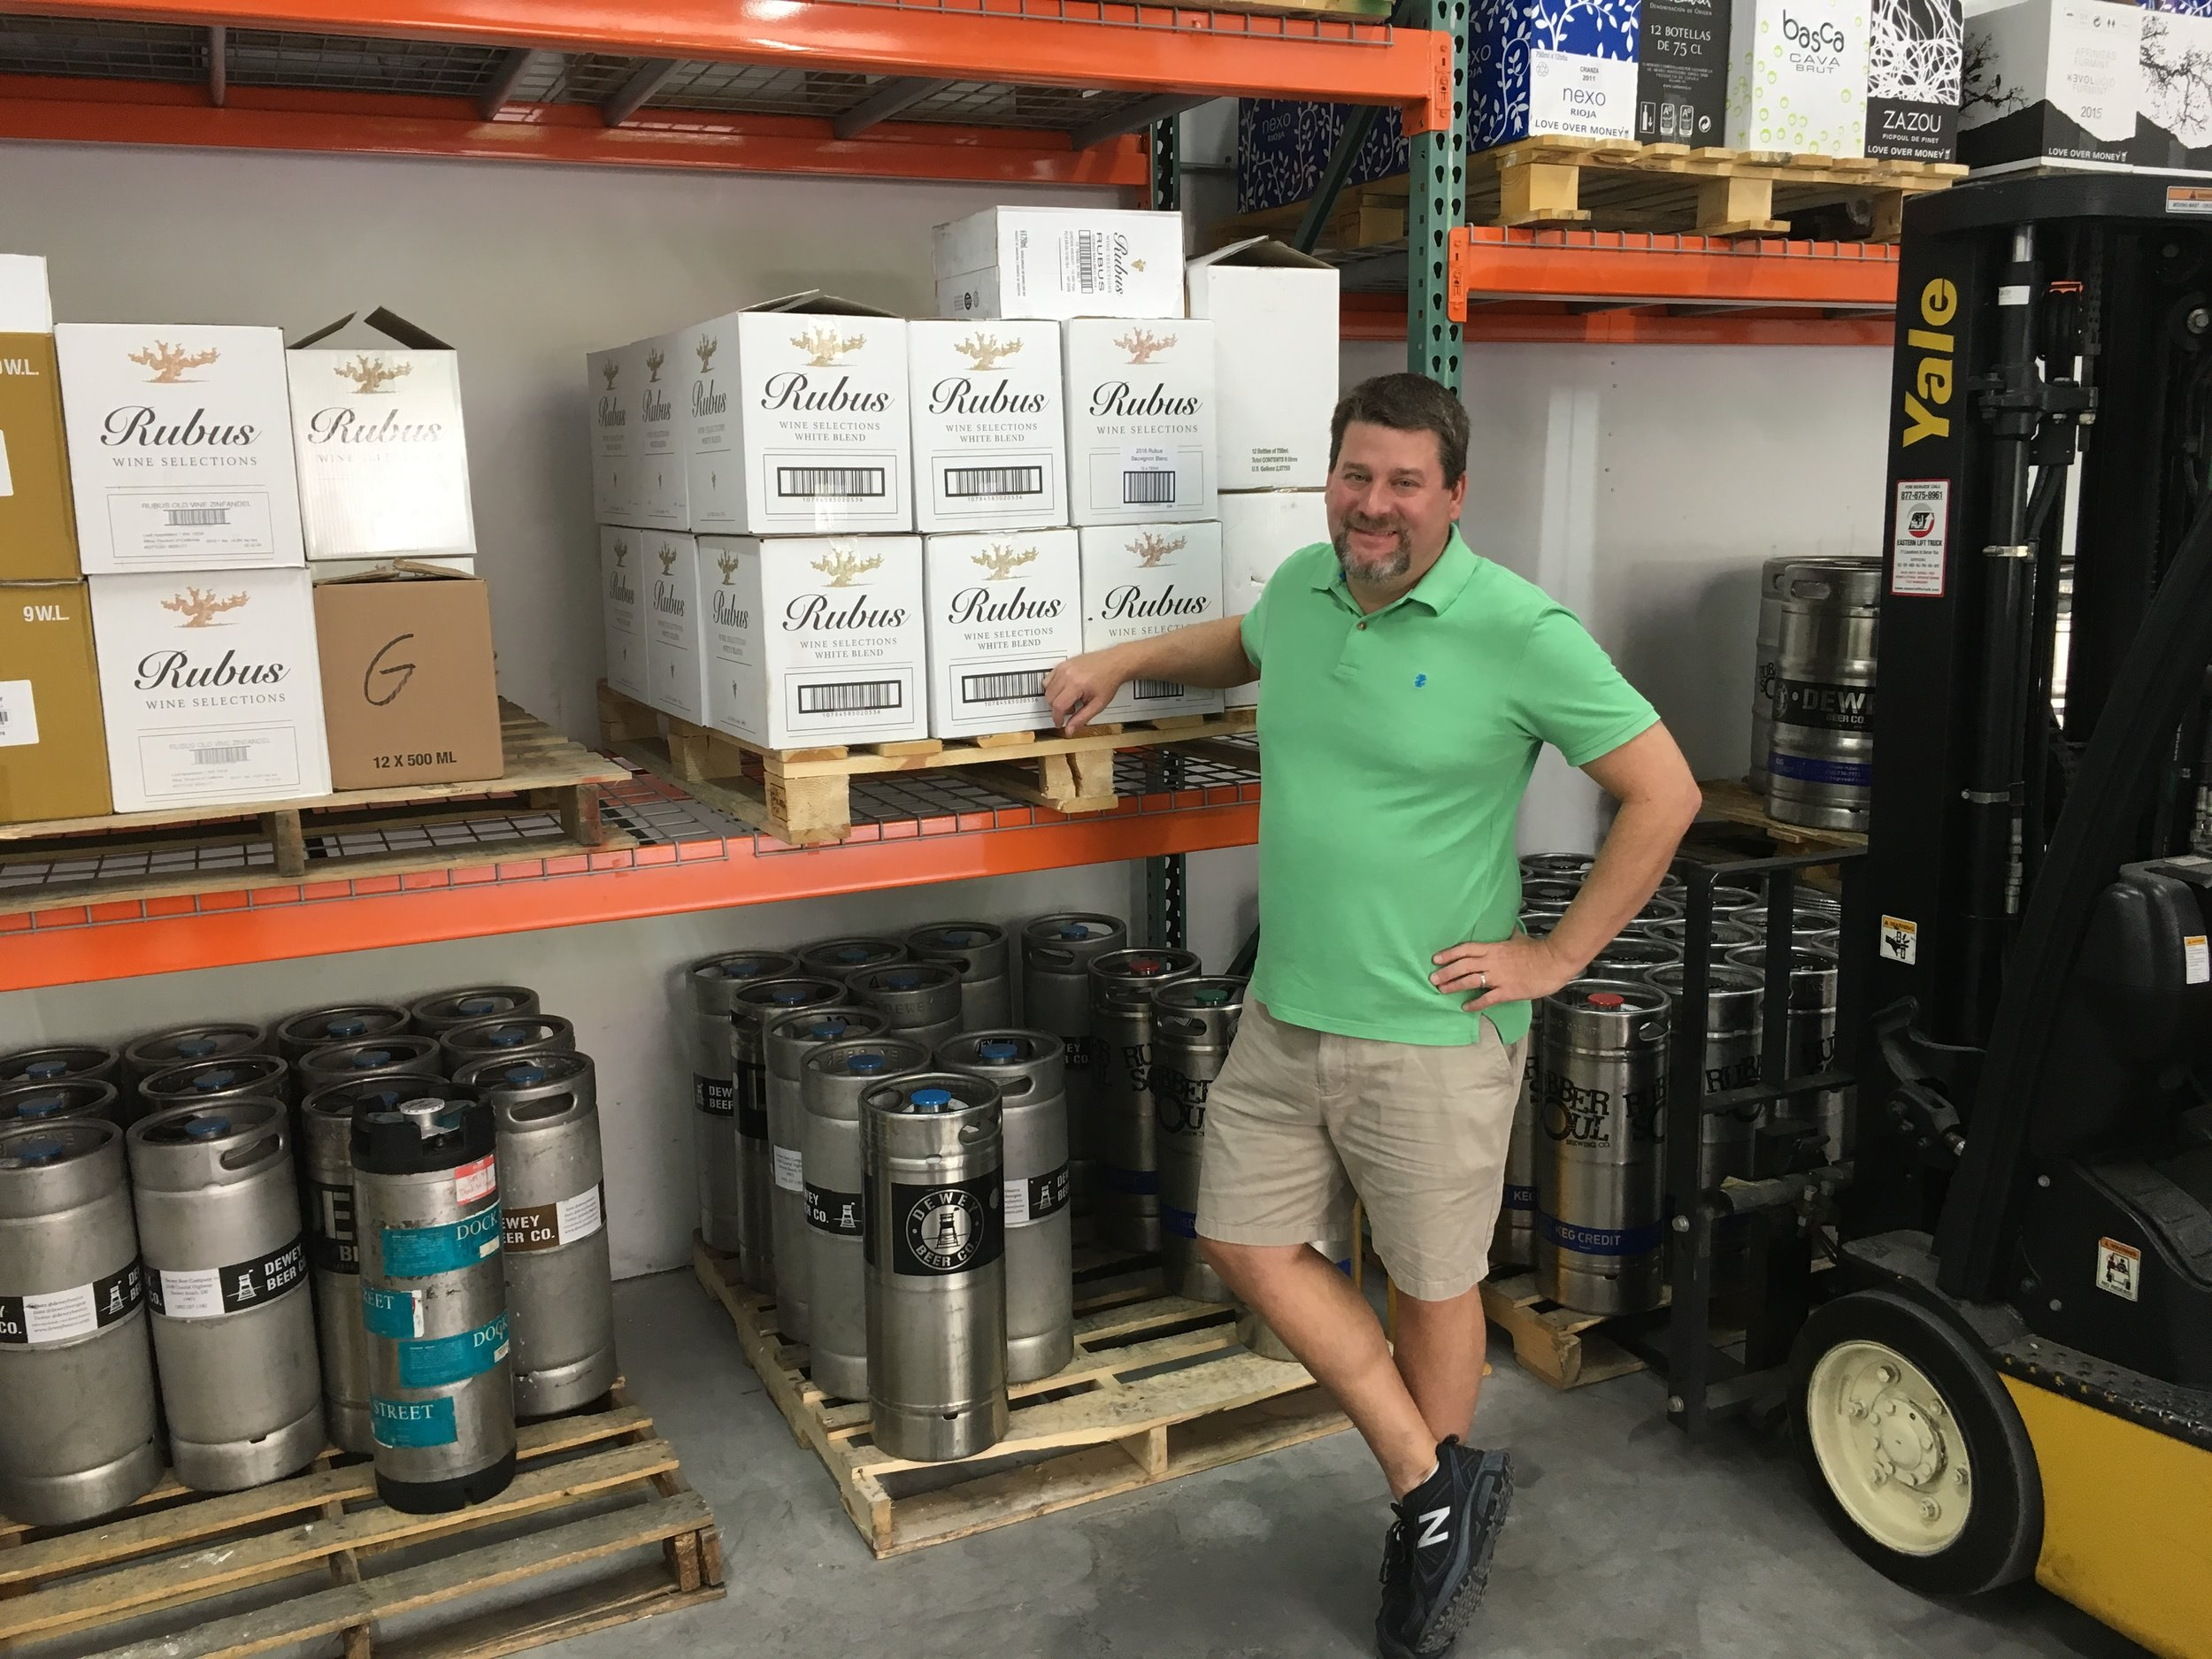 Craft breweries inspire craft-only distributor in Delaware - What happens when you're employer quits? You fill the niche.